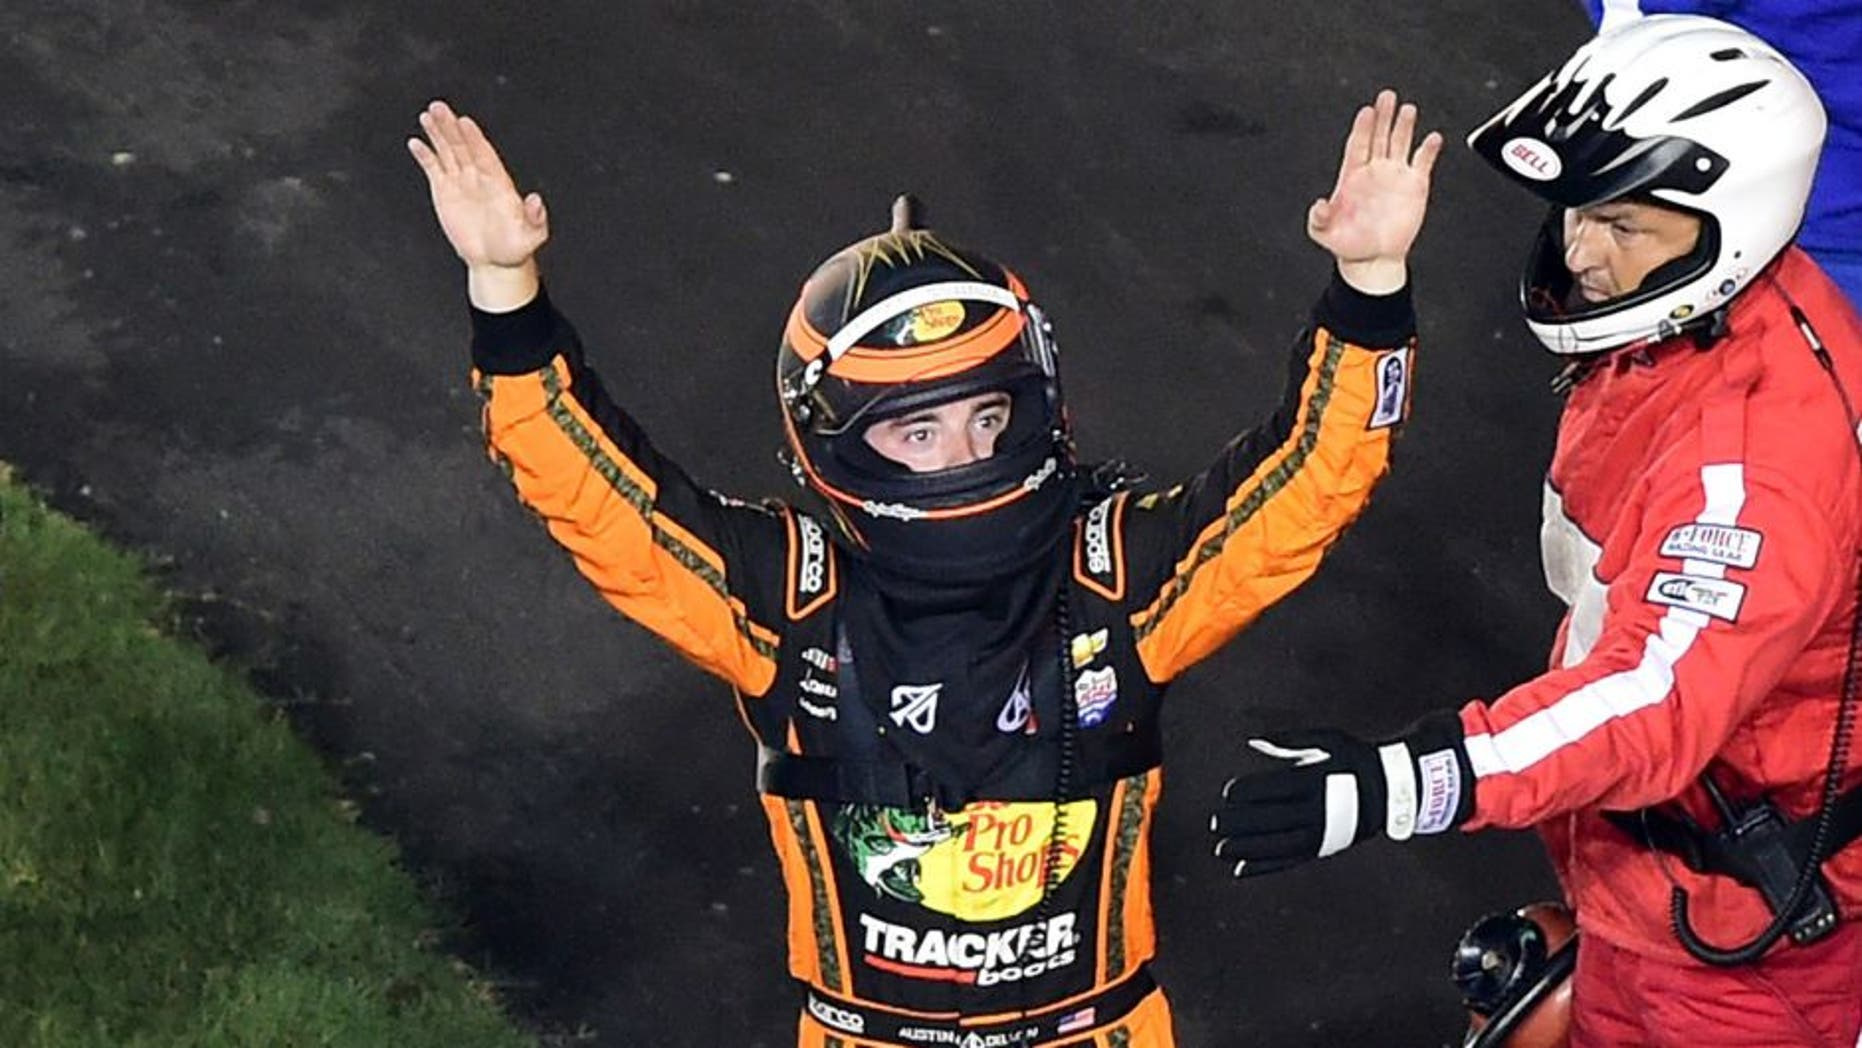 DAYTONA BEACH, FL - JULY 06: Austin Dillon, driver of the #3 Bass Pro Shops Chevrolet, gestures to the crowd after being involved in an on-track incident during the NASCAR Sprint Cup Series Coke Zero 400 Powered by Coca-Cola at Daytona International Speedway on July 6, 2015 in Daytona Beach, Florida. (Photo by Jared C. Tilton/NASCAR via Getty Images)